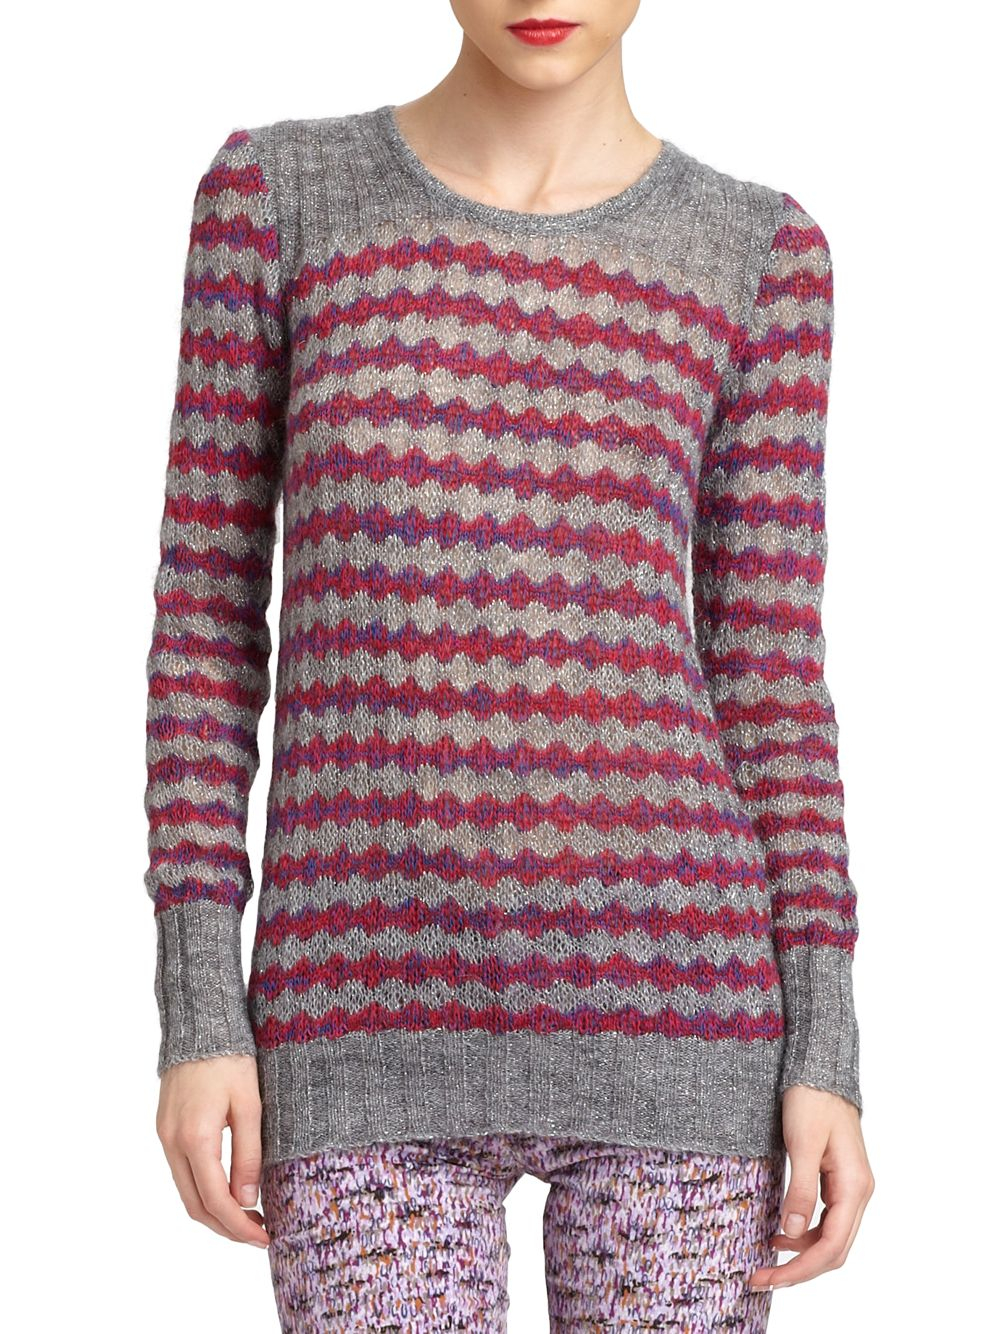 marc by marc jacobs twinkle stripe metallic knit pullover in gray lyst. Black Bedroom Furniture Sets. Home Design Ideas